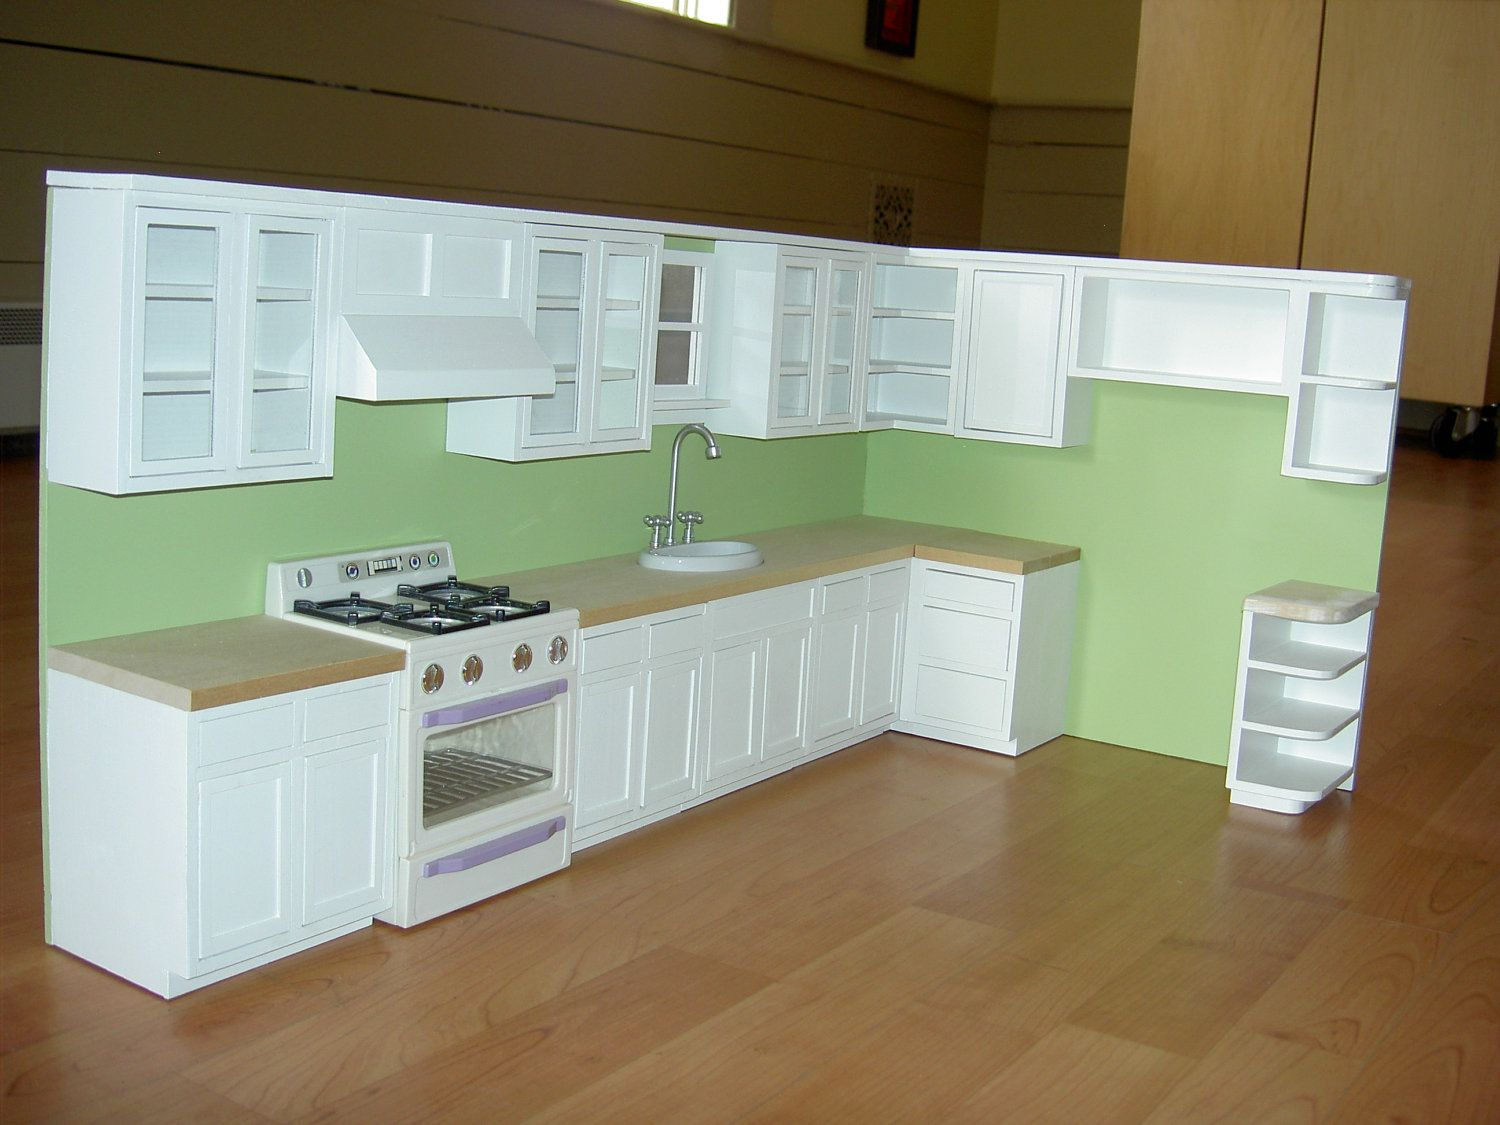 Barbie Dolls Hello Dreamhouse Dollhouse W Kitchen: Way Expensive; Inspiration For A Realistic Kitchen